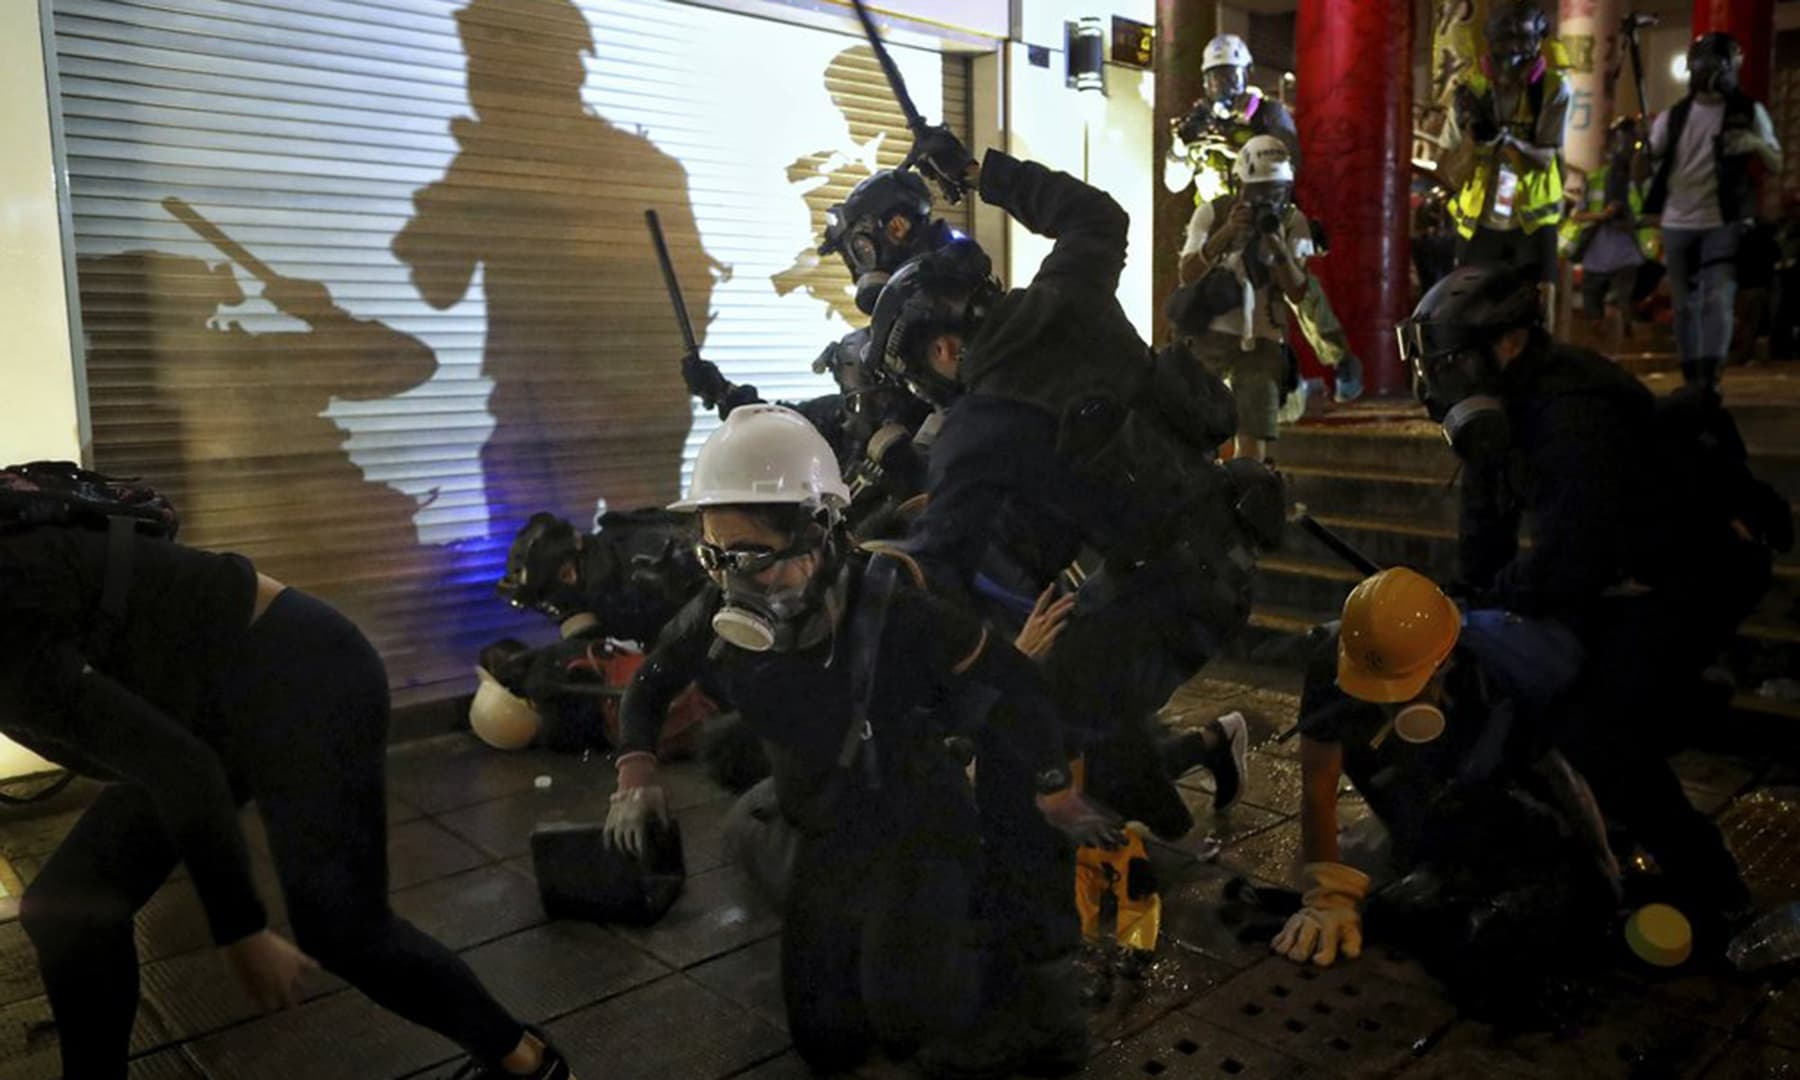 In this Aug 11, 2019, photo, policemen charge towards protesters during the anti-extradition bill protest at Tsim Sha Tsui in Hong Kong. — AP